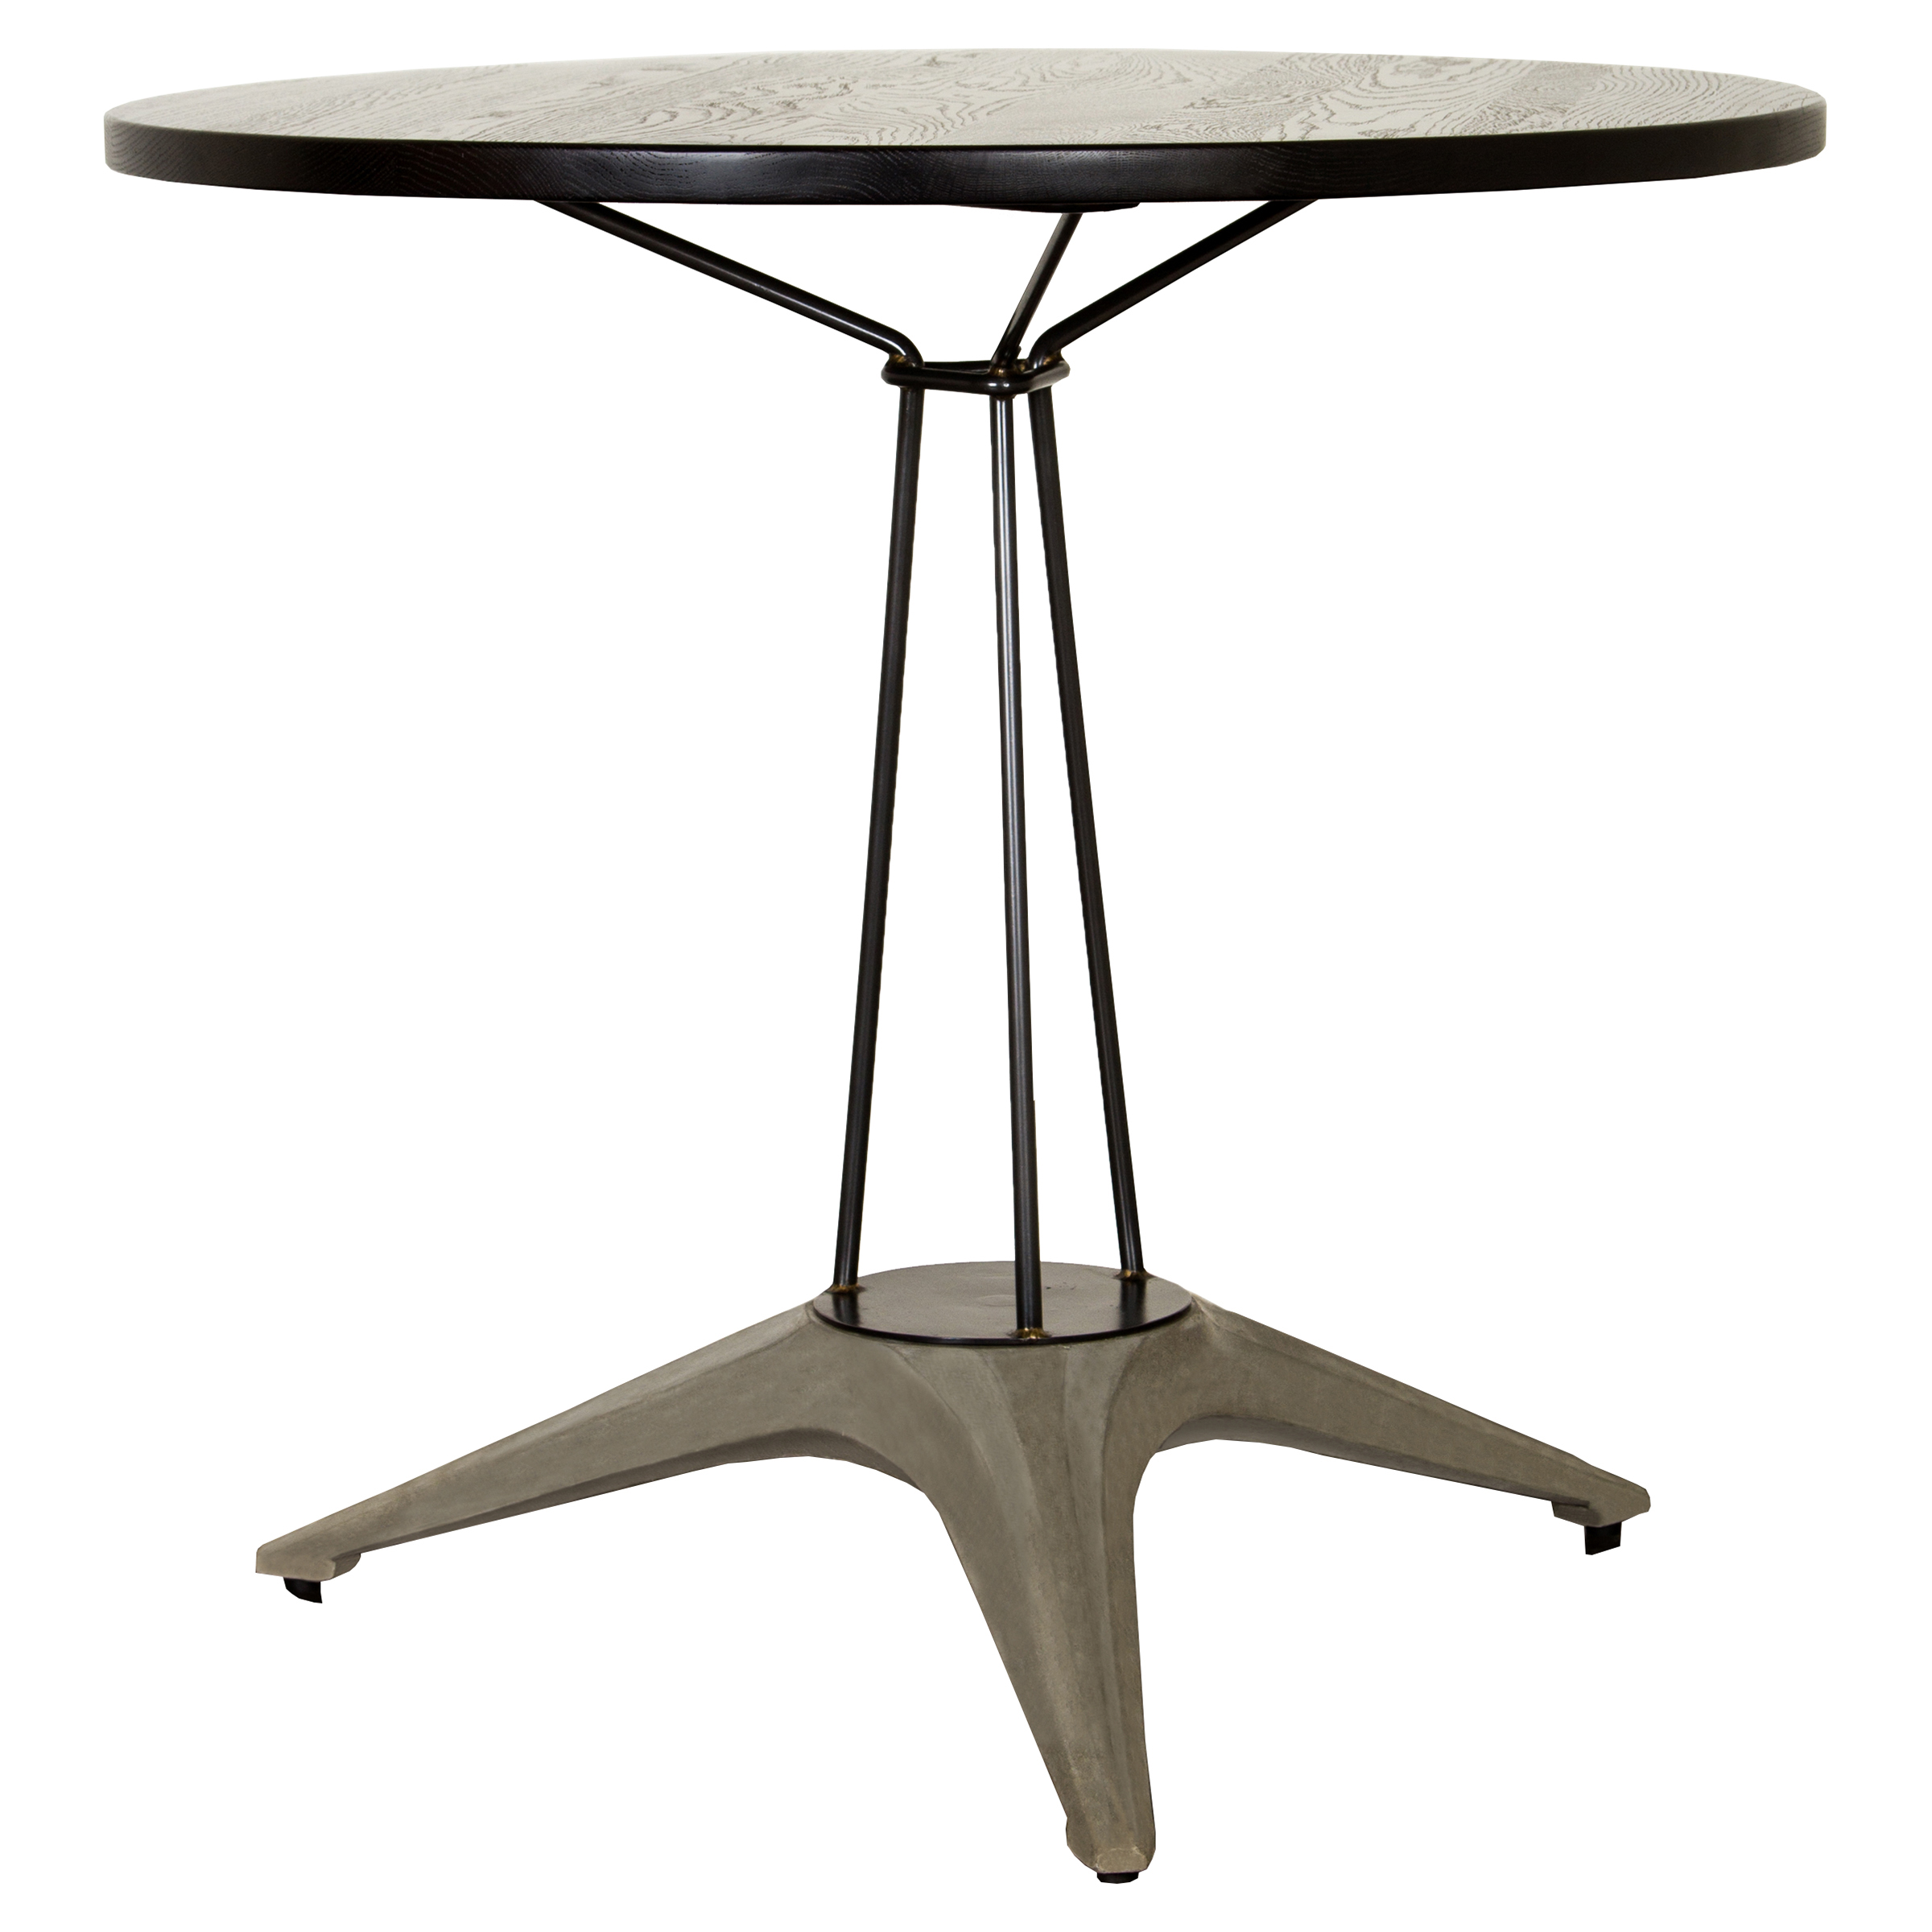 Maddock Industrial Loft Round Iron Cafe Table